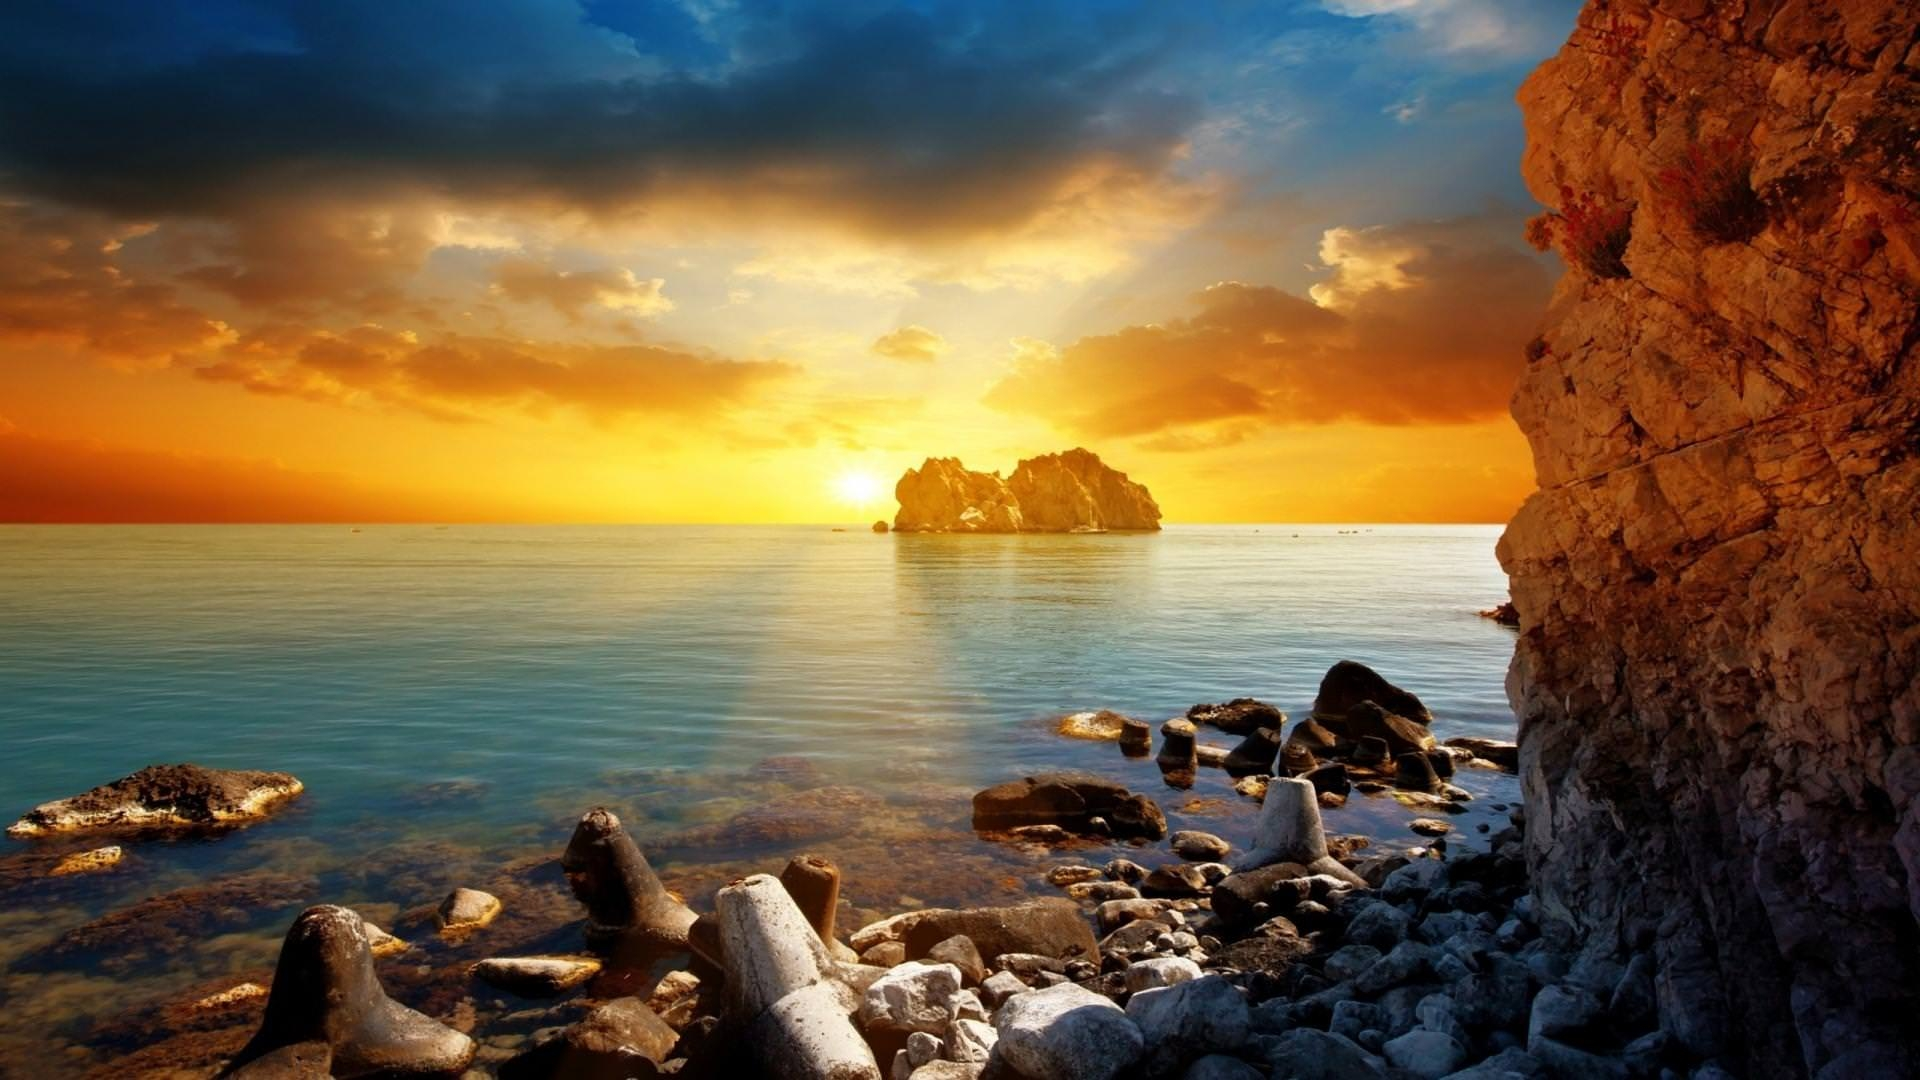 ocean sunset cool wide high definition wallpaper